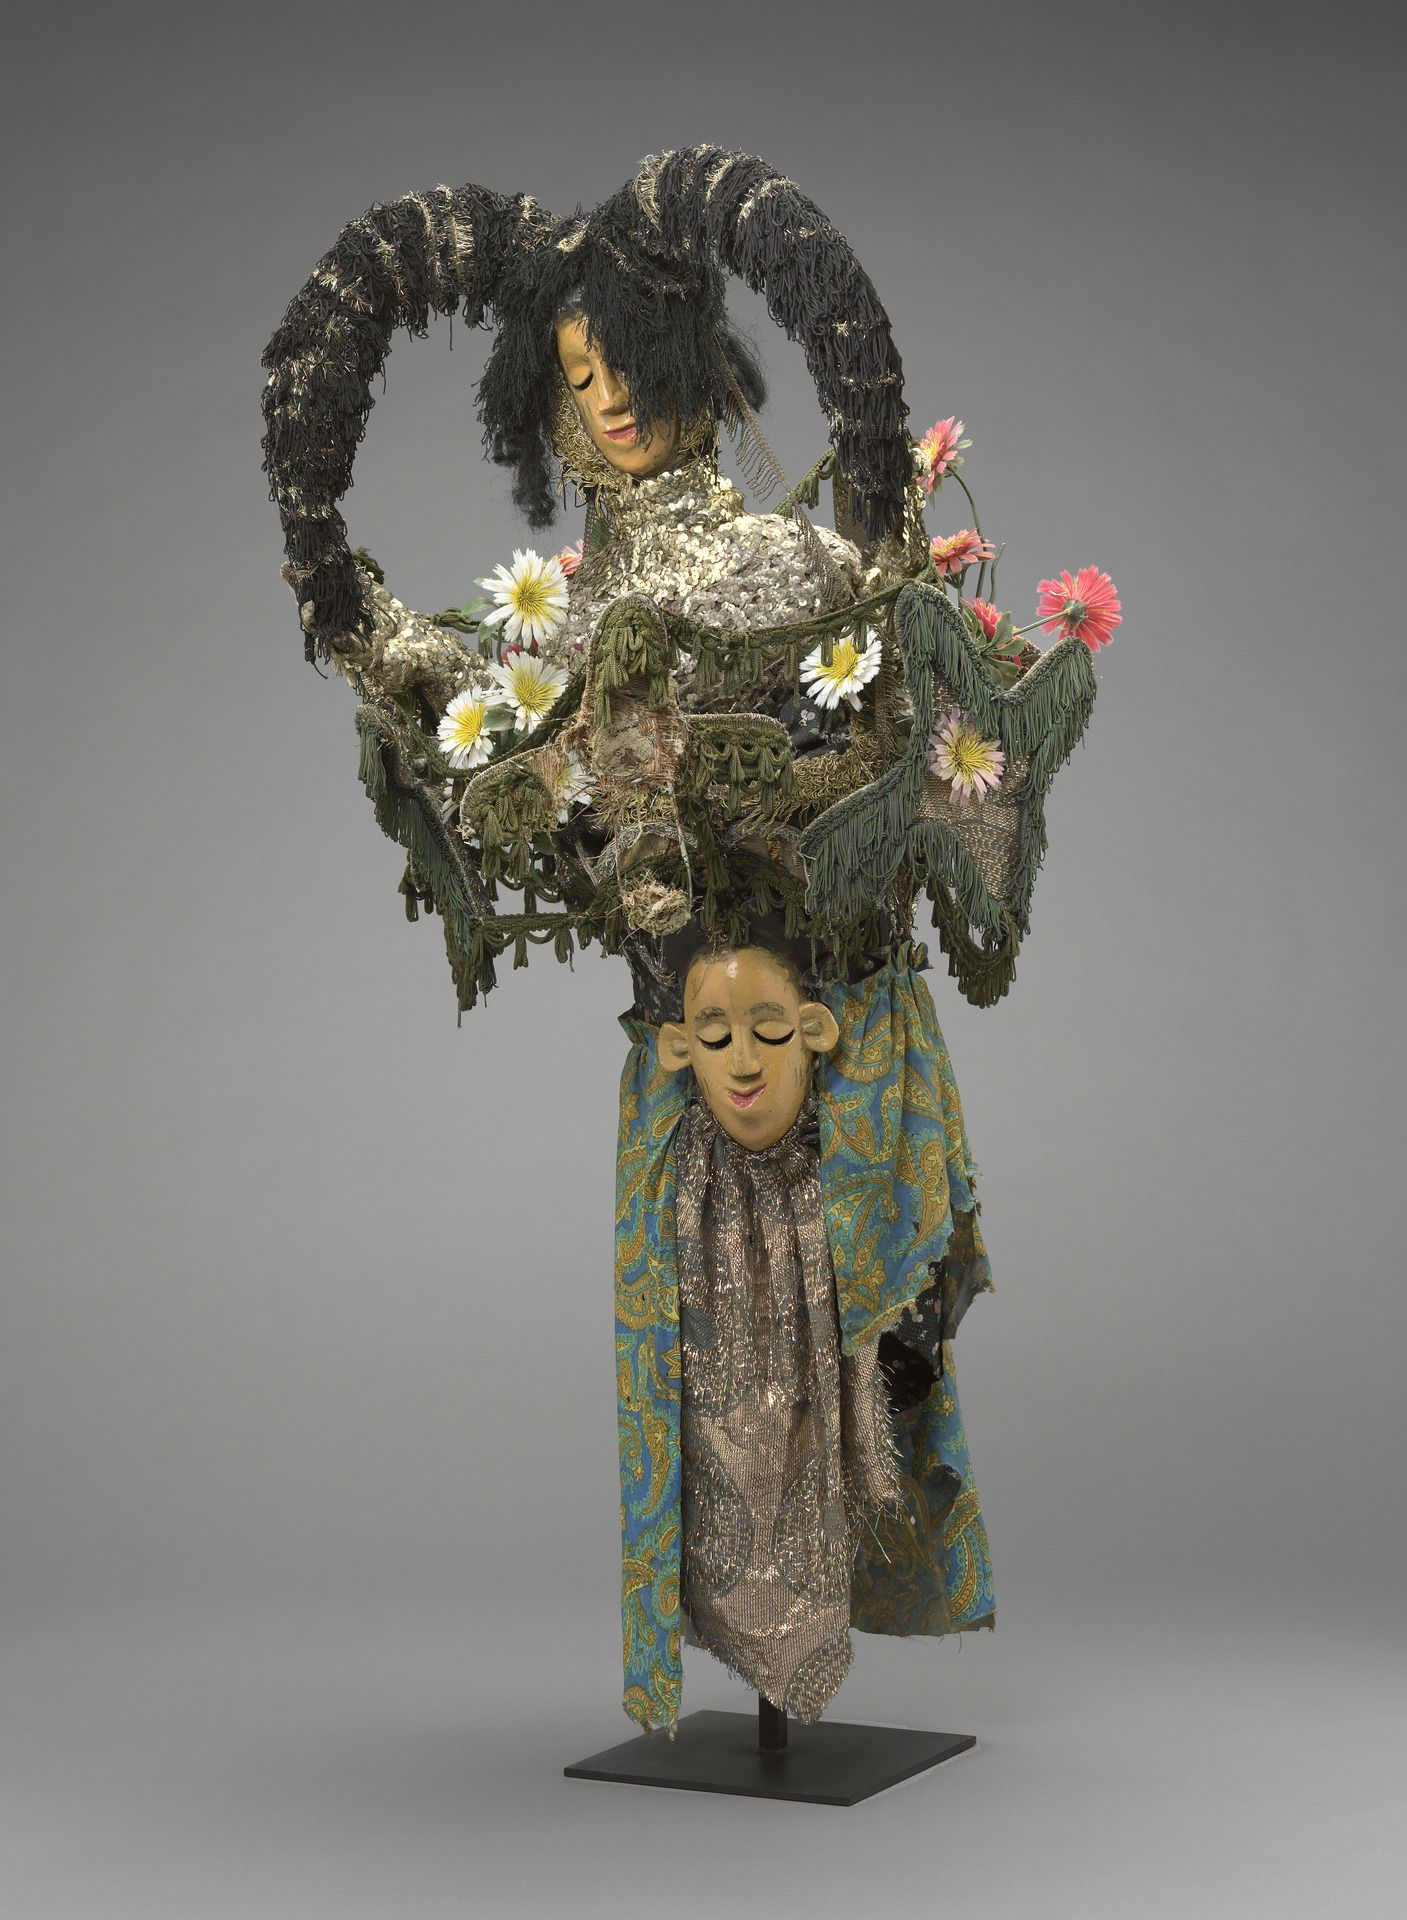 Mask with Superstructure in the Form of a Female Figure